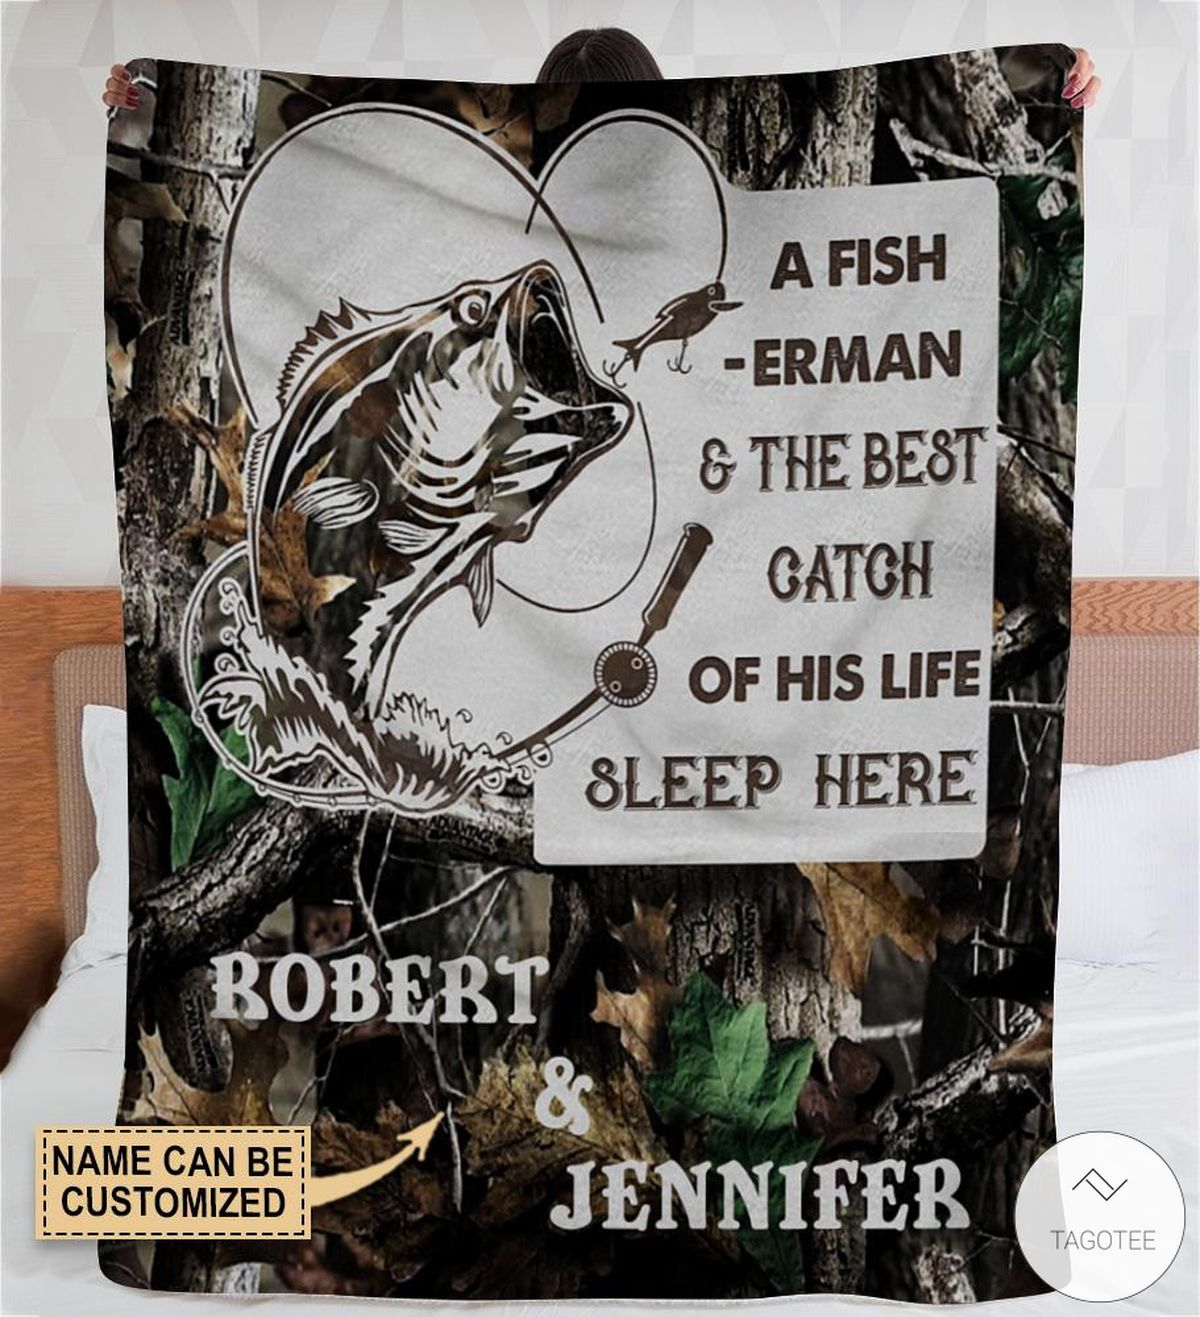 Personalized A Fisherman & The Best Catch Of His Life Sleep Here Fleece Blanket